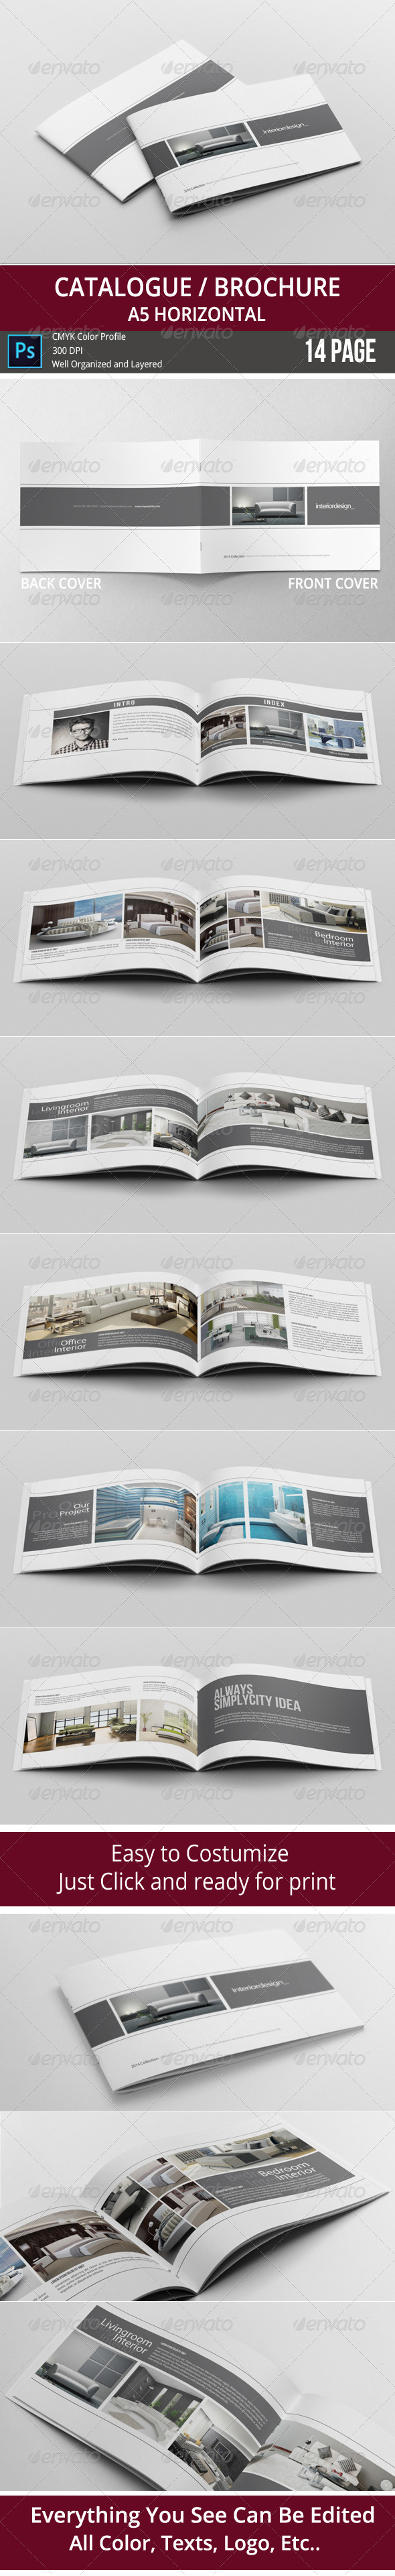 GraphicRiver Catalogue Brochure 8240264